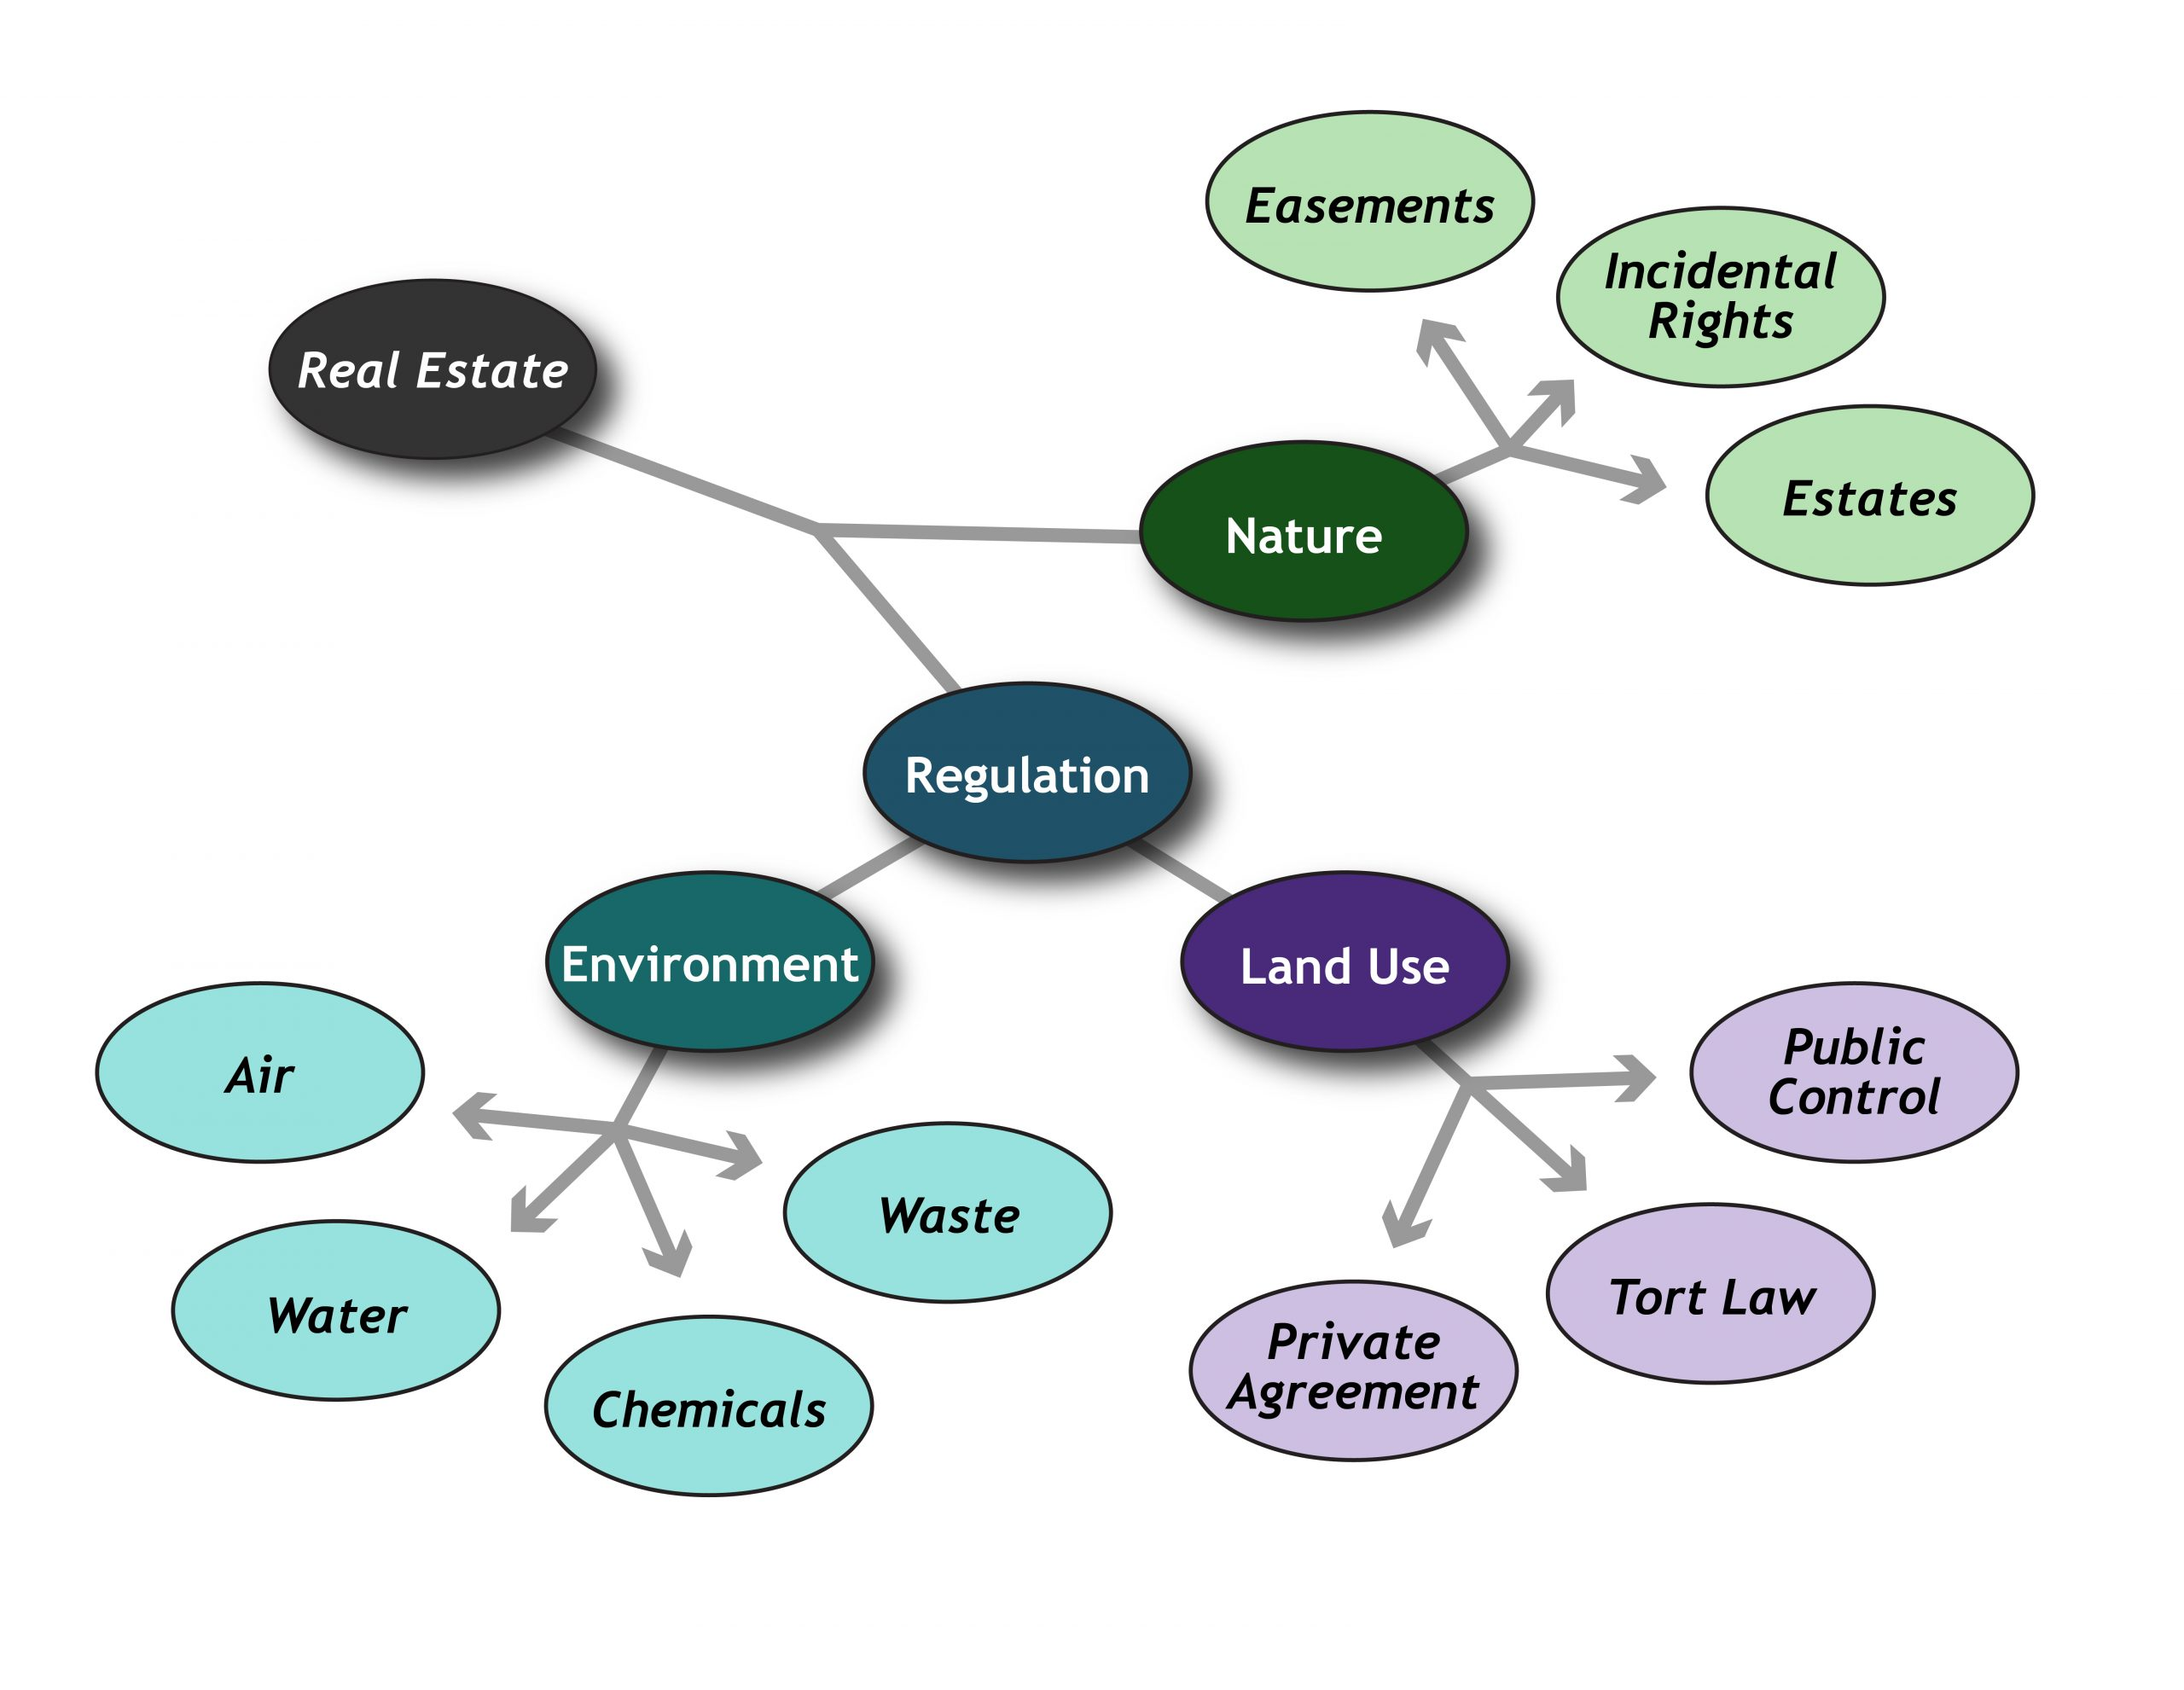 Diagram showing the types of real estate legal causes of action